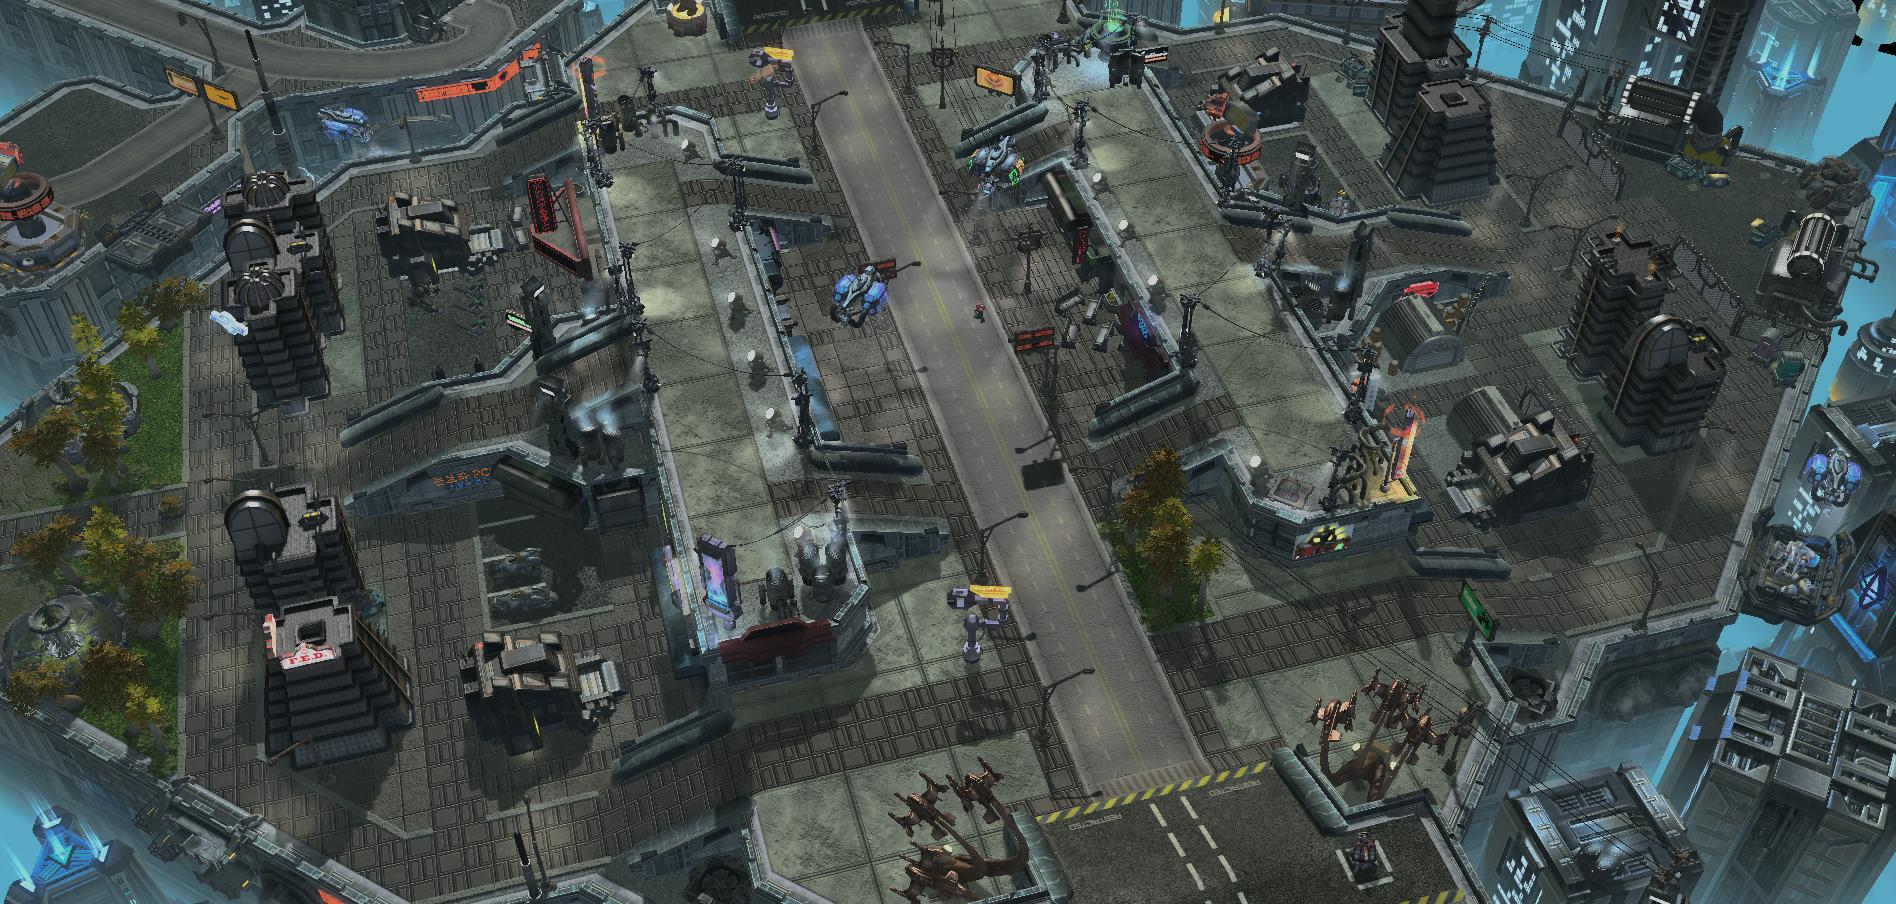 Overview - Template Maps - Maps - Projects - SC2Mapster on monte carlo maps, fusion maps, tf2 maps, tacoma maps, explorer maps, diablo maps, gw2 maps,